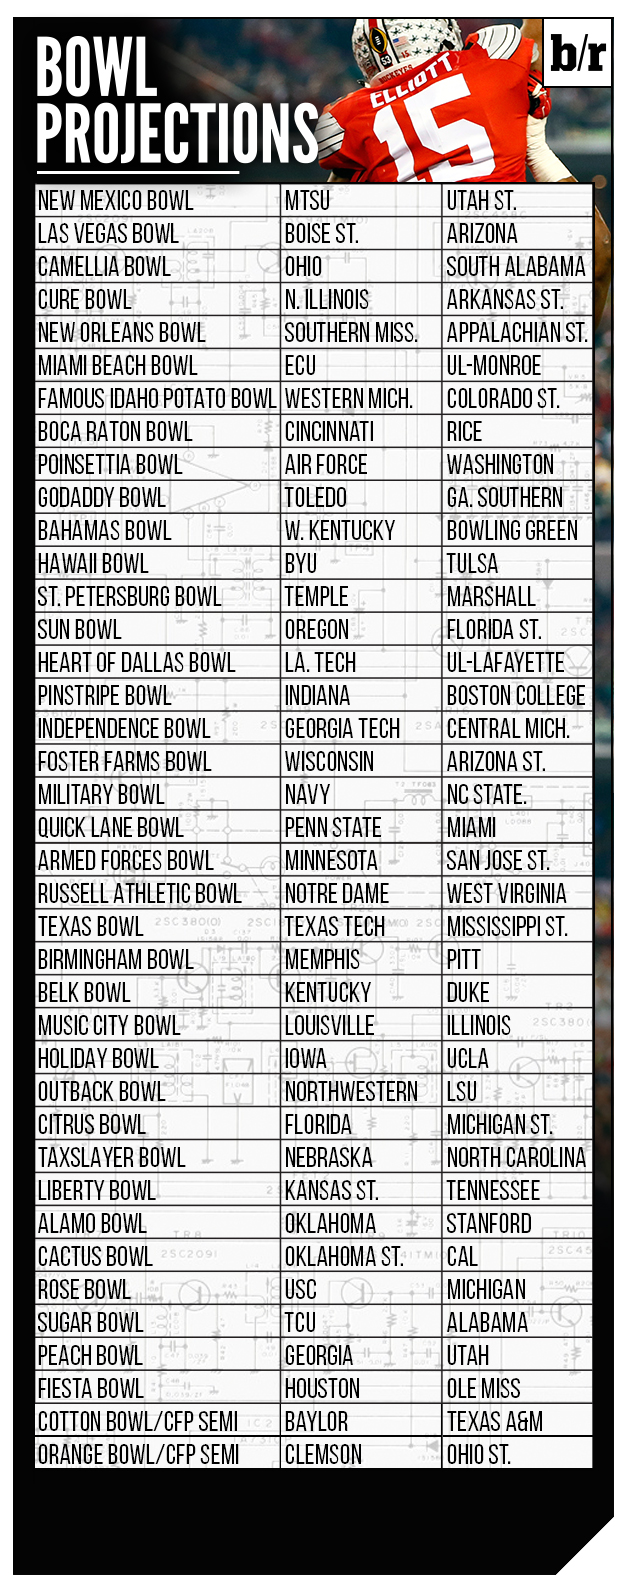 college playoff football rankings bowl games tonight